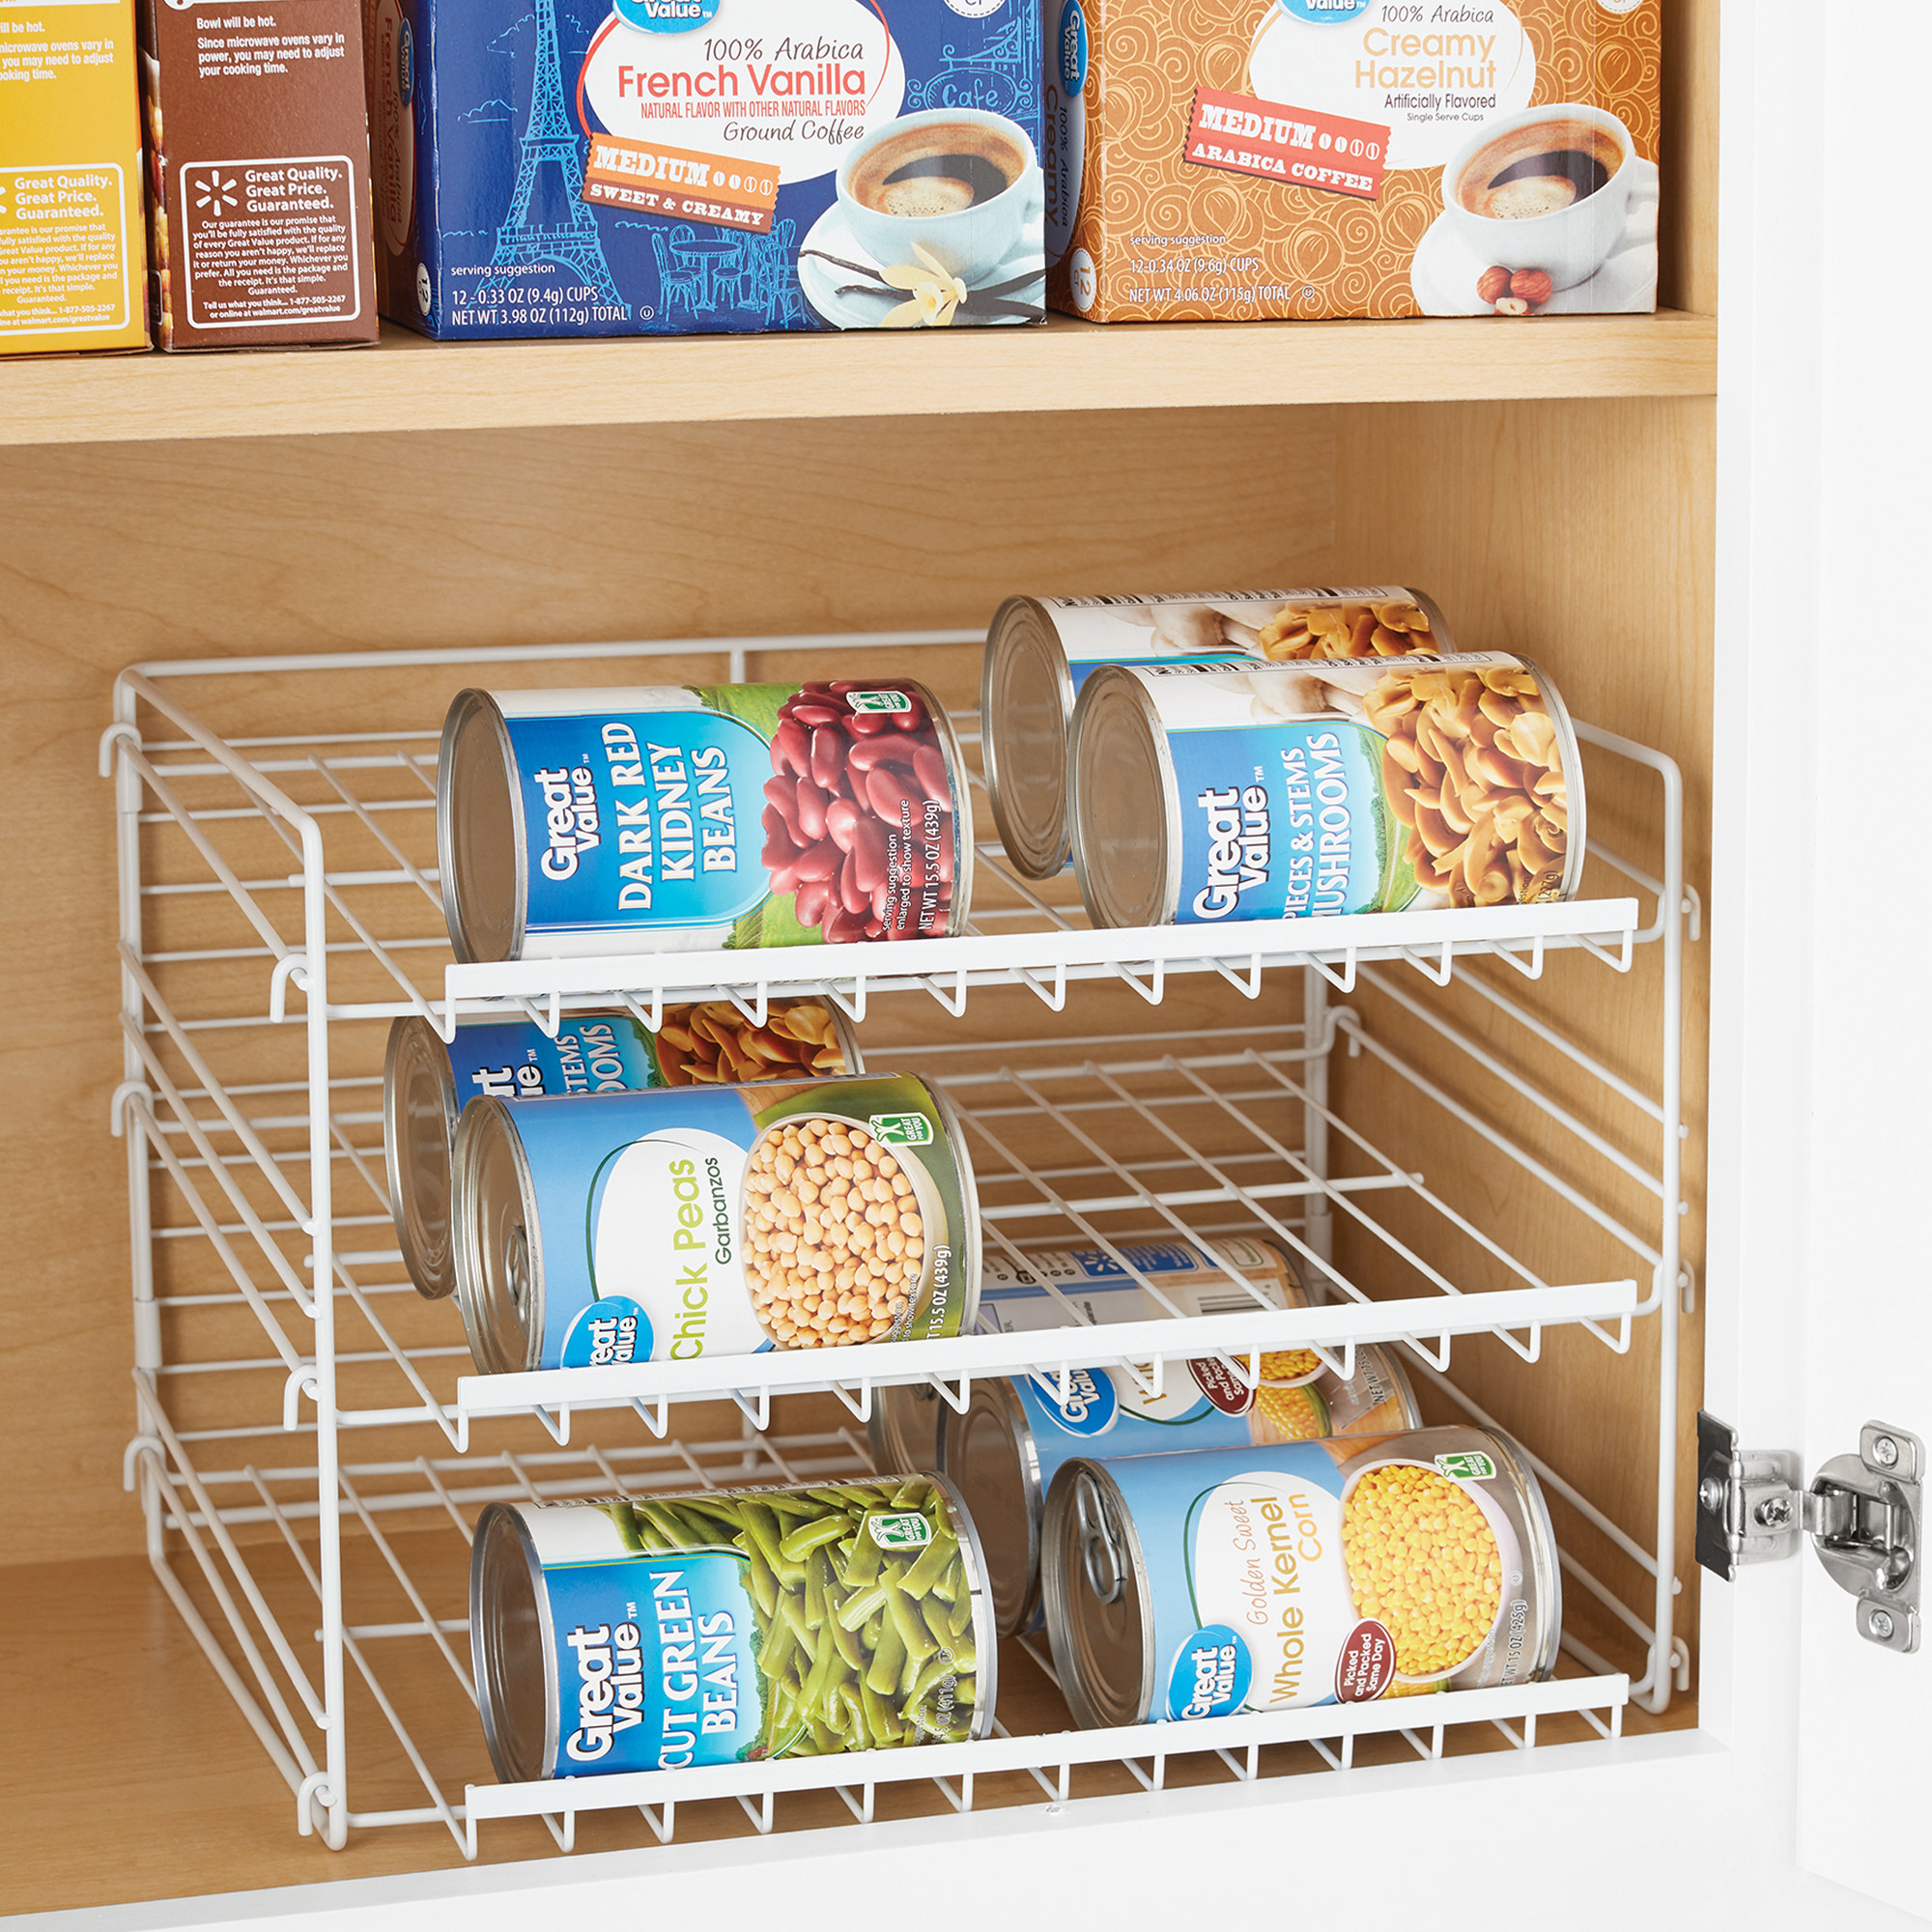 three-tiered white can organizer with cans on the shelves, in a cabinet